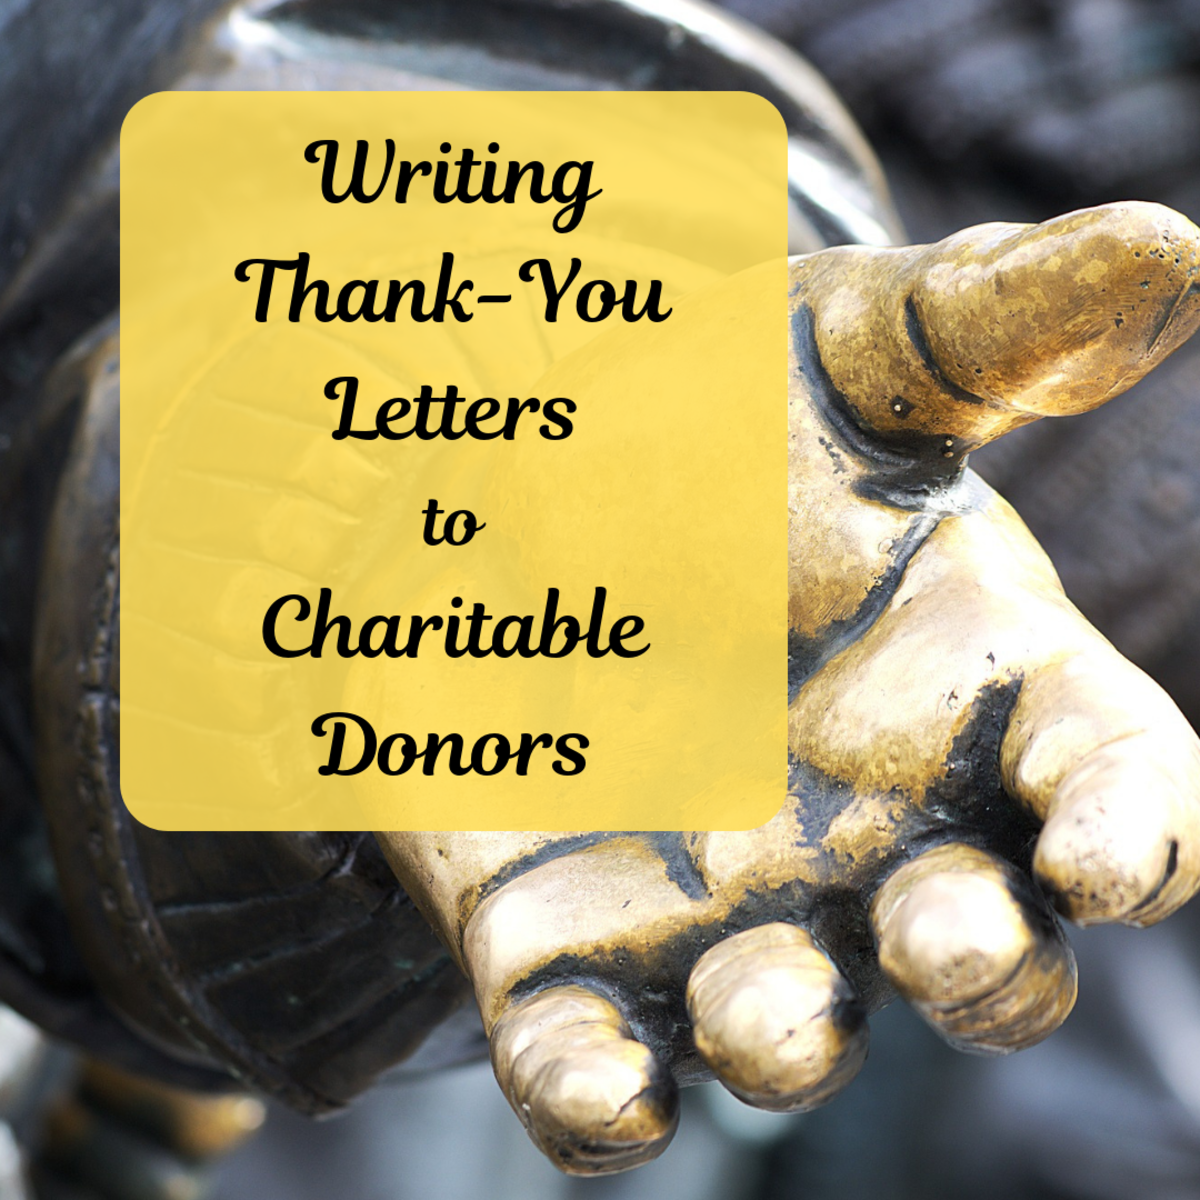 Want to show your donor how grateful you are but can't quite find the right words? Read on for just the right messages to include in your thank-you letter or note.